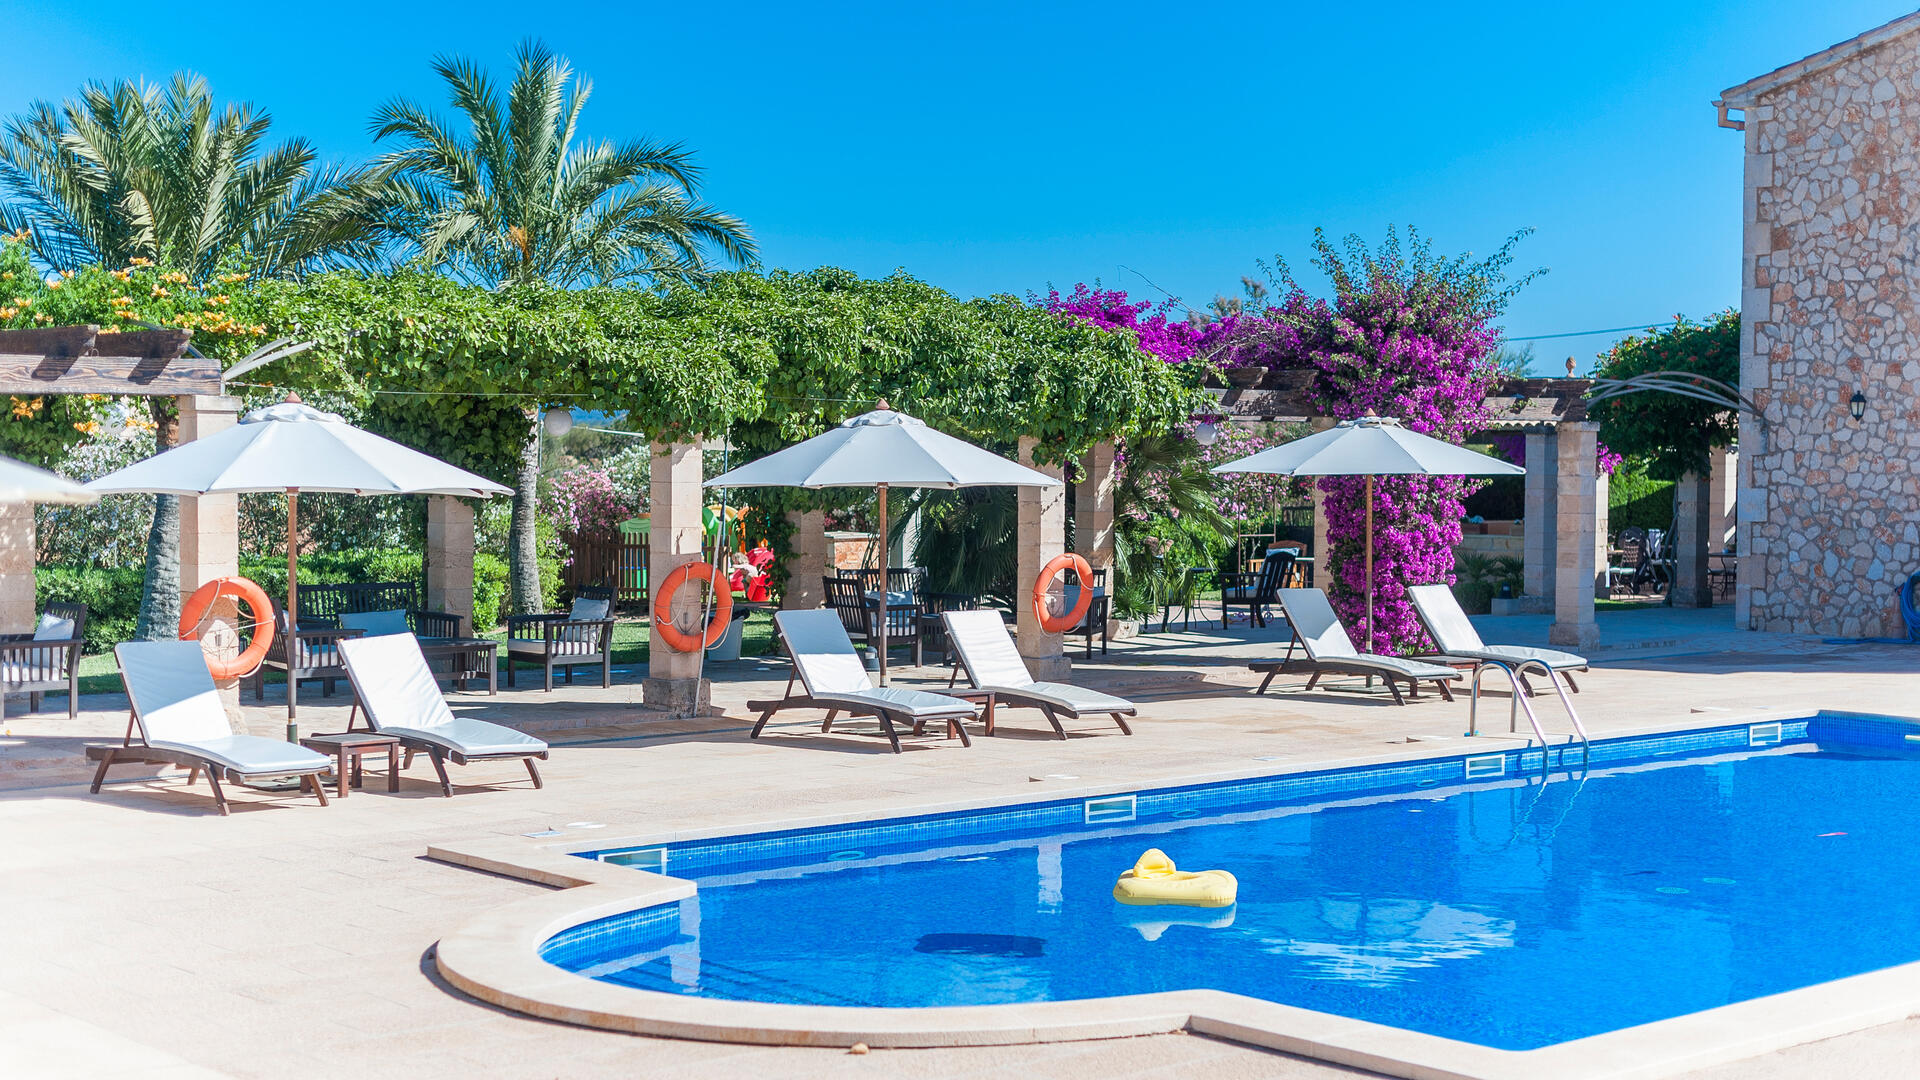 Hotel Migjorn, small family-friendly hotel in Mallorca